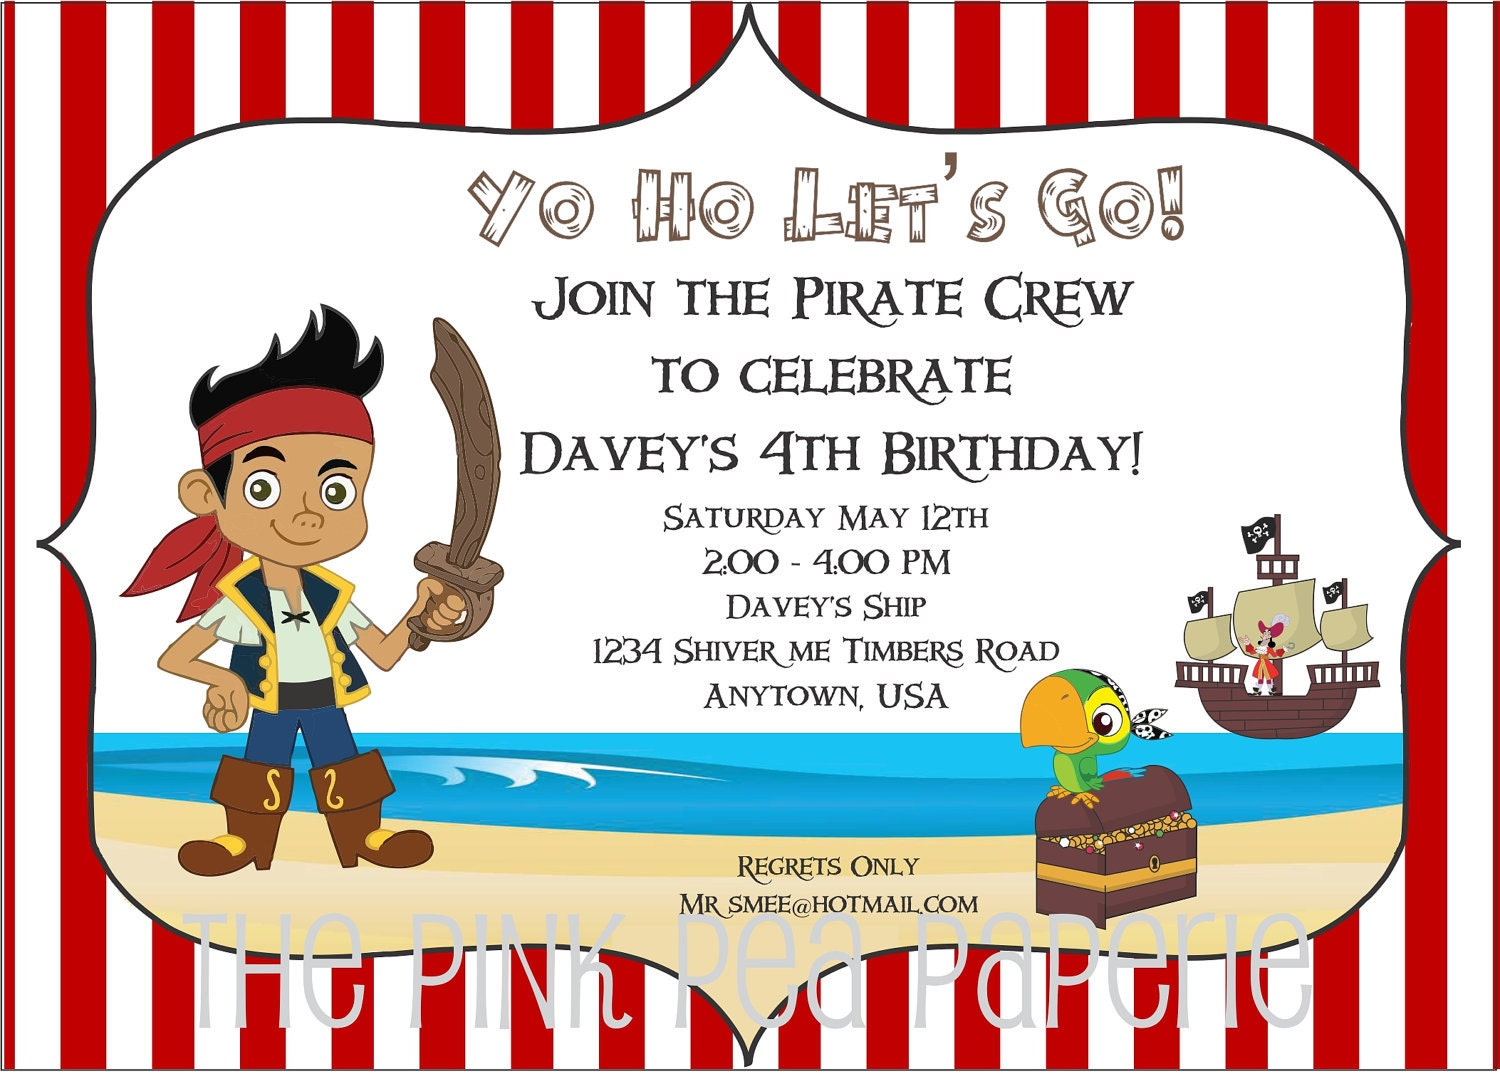 Jake and the neverland pirates party invitations - photo#17